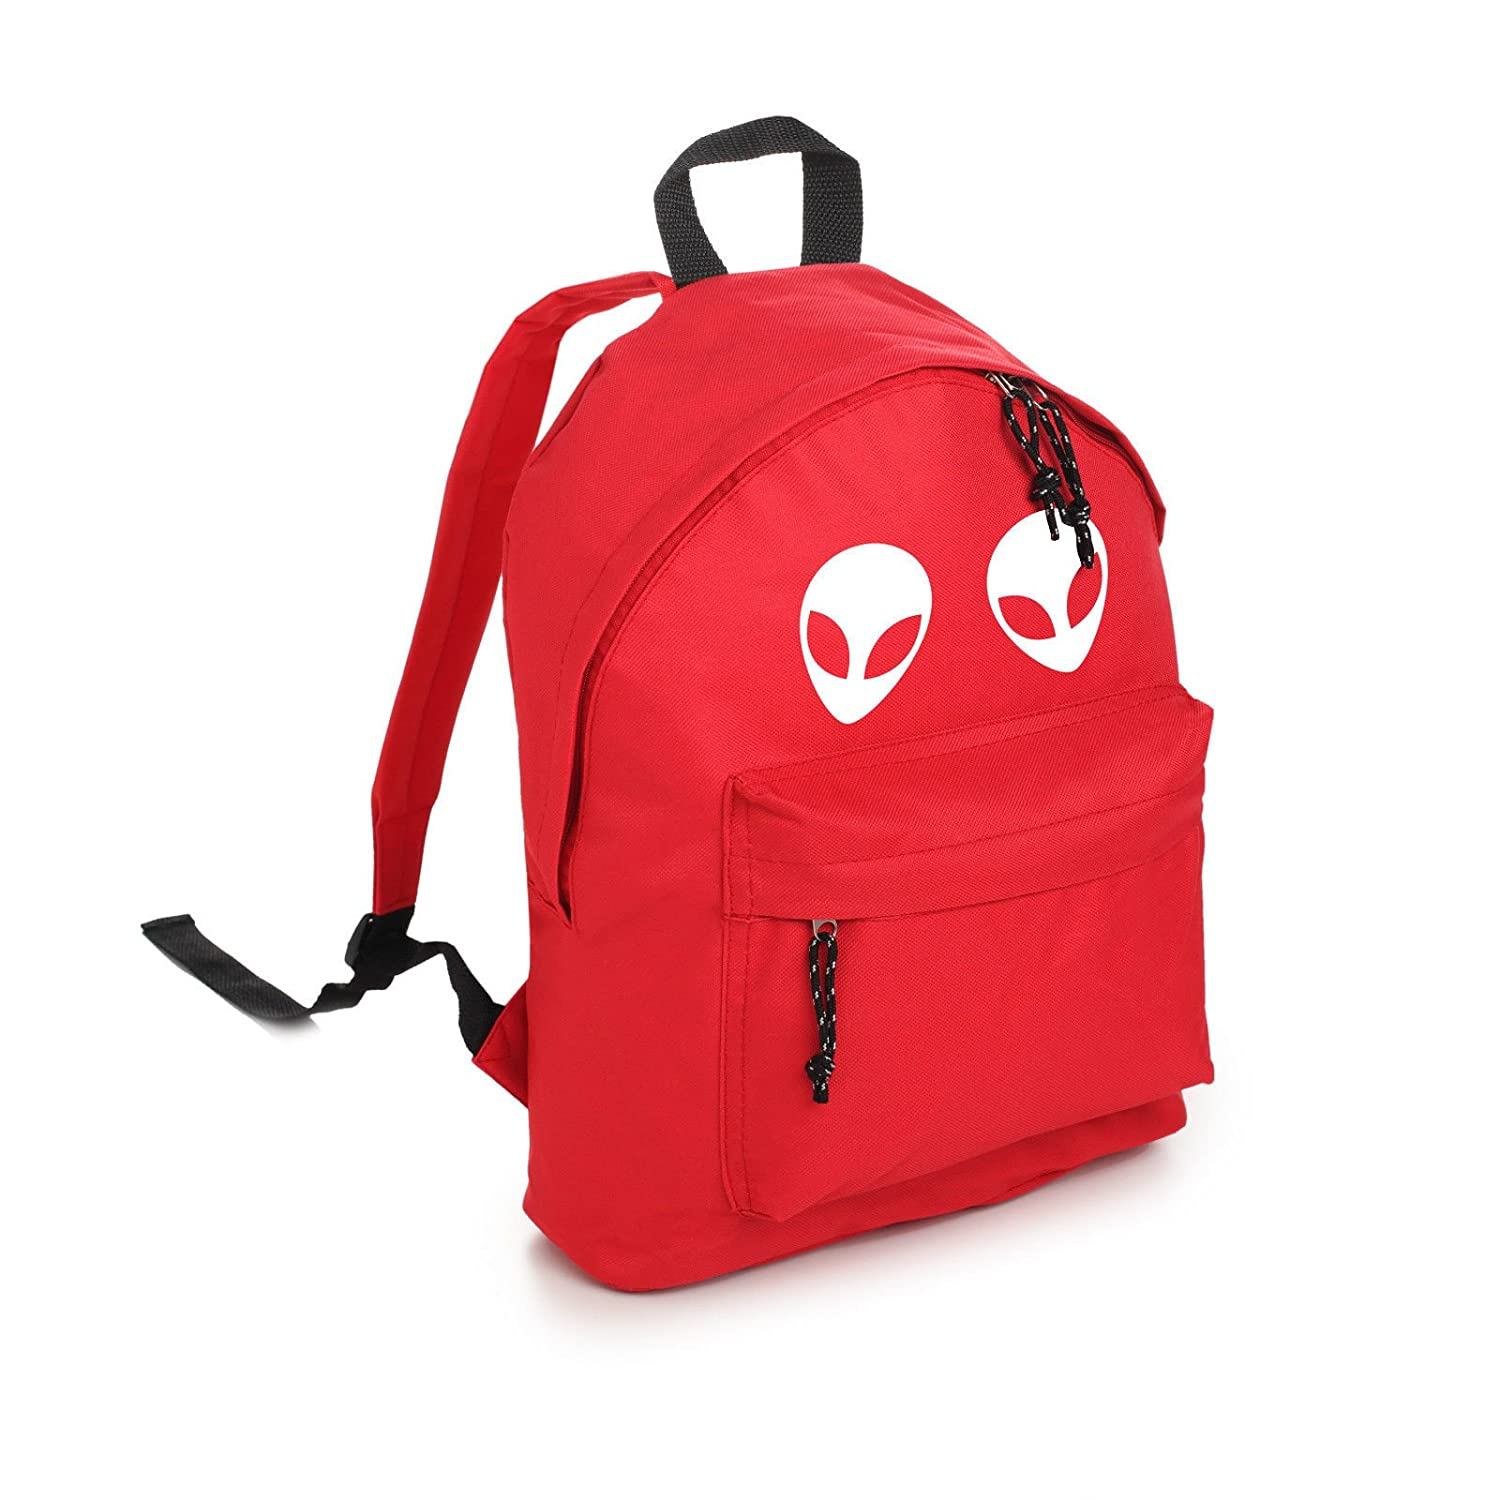 09734790bef MICKEY MIDDLE FINGER BACKPACK SCHOOL MOUSE BOOK BOY GIRL BAG COLLEGE SWAG  DOPE